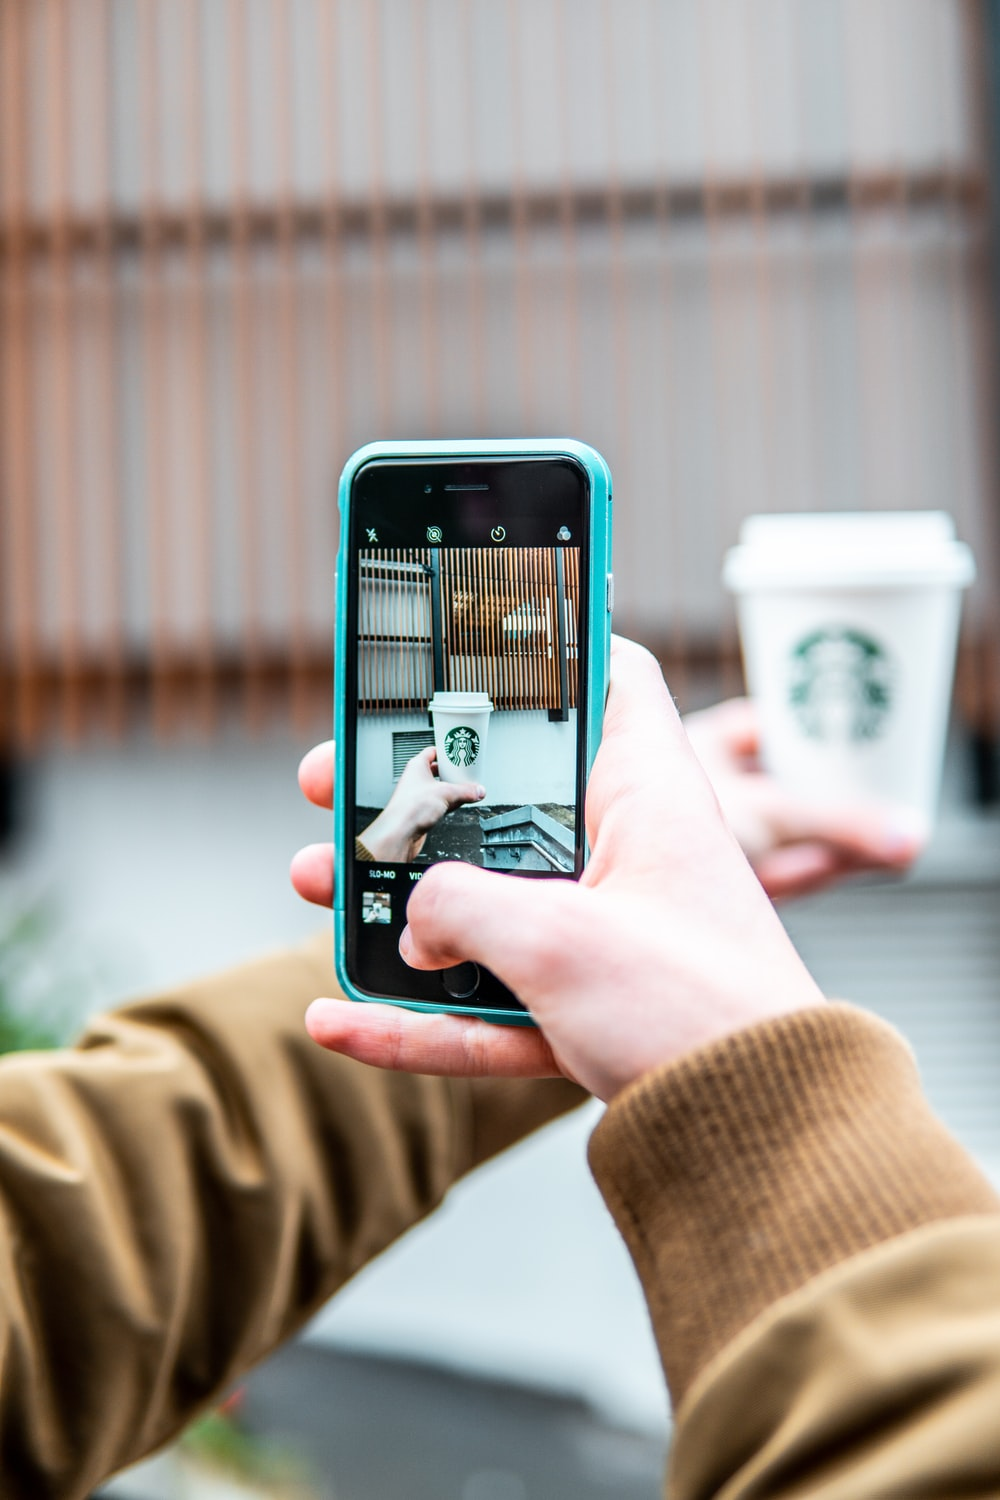 person taking photo of Starbucks cup